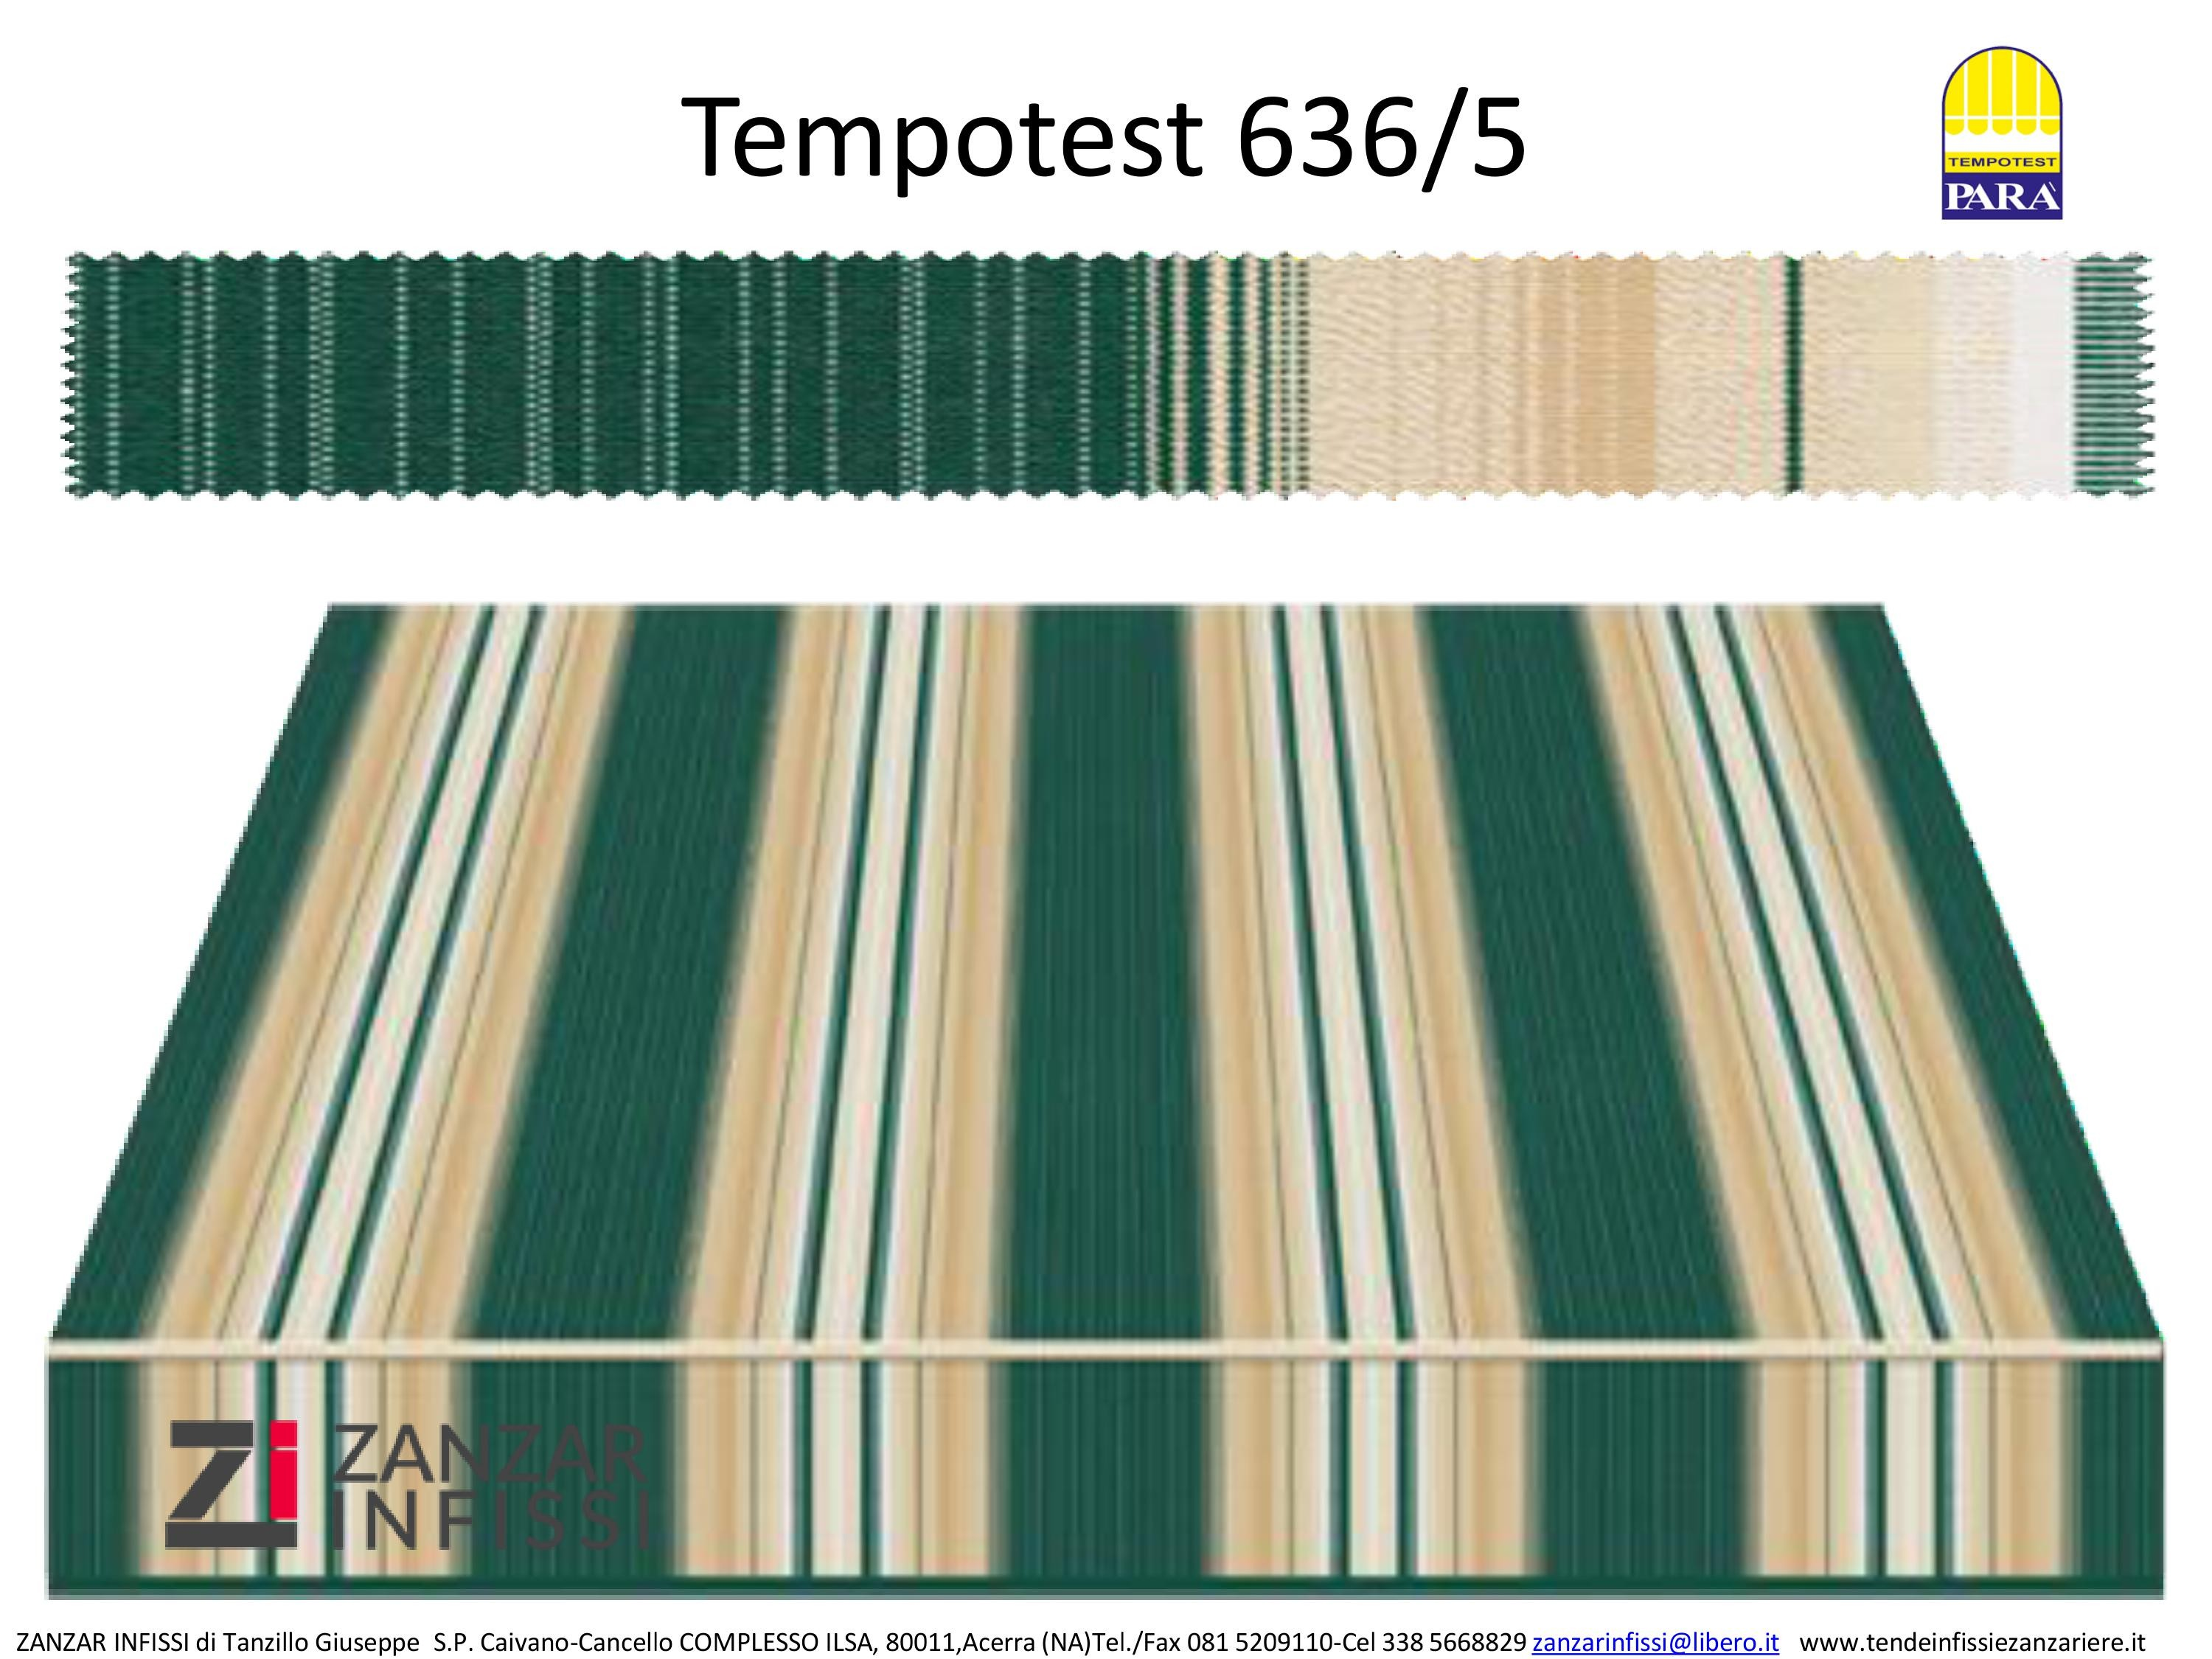 Tempotest 636/5